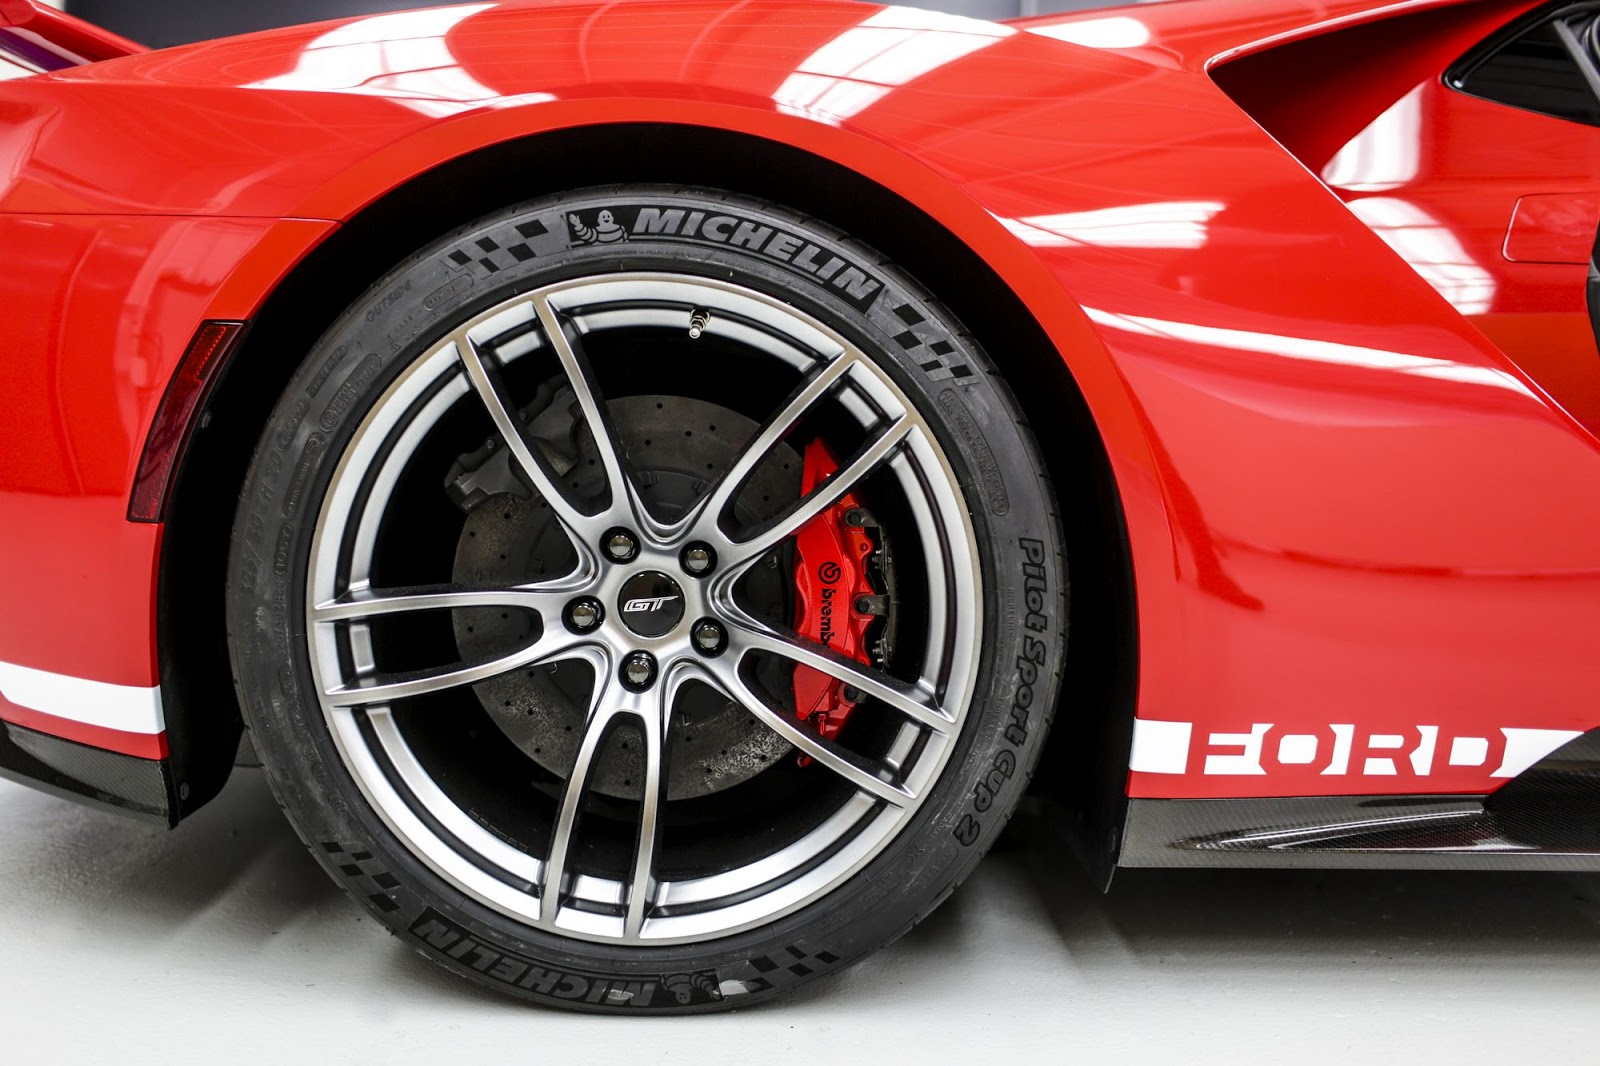 Ford GT '67 Heritage edition with unique red-and-white-stripe livery celebrates 1967 Le Mans-winning GT40 Mark IV race car driven by all-American team of Dan Gurney and A.J. Foyt